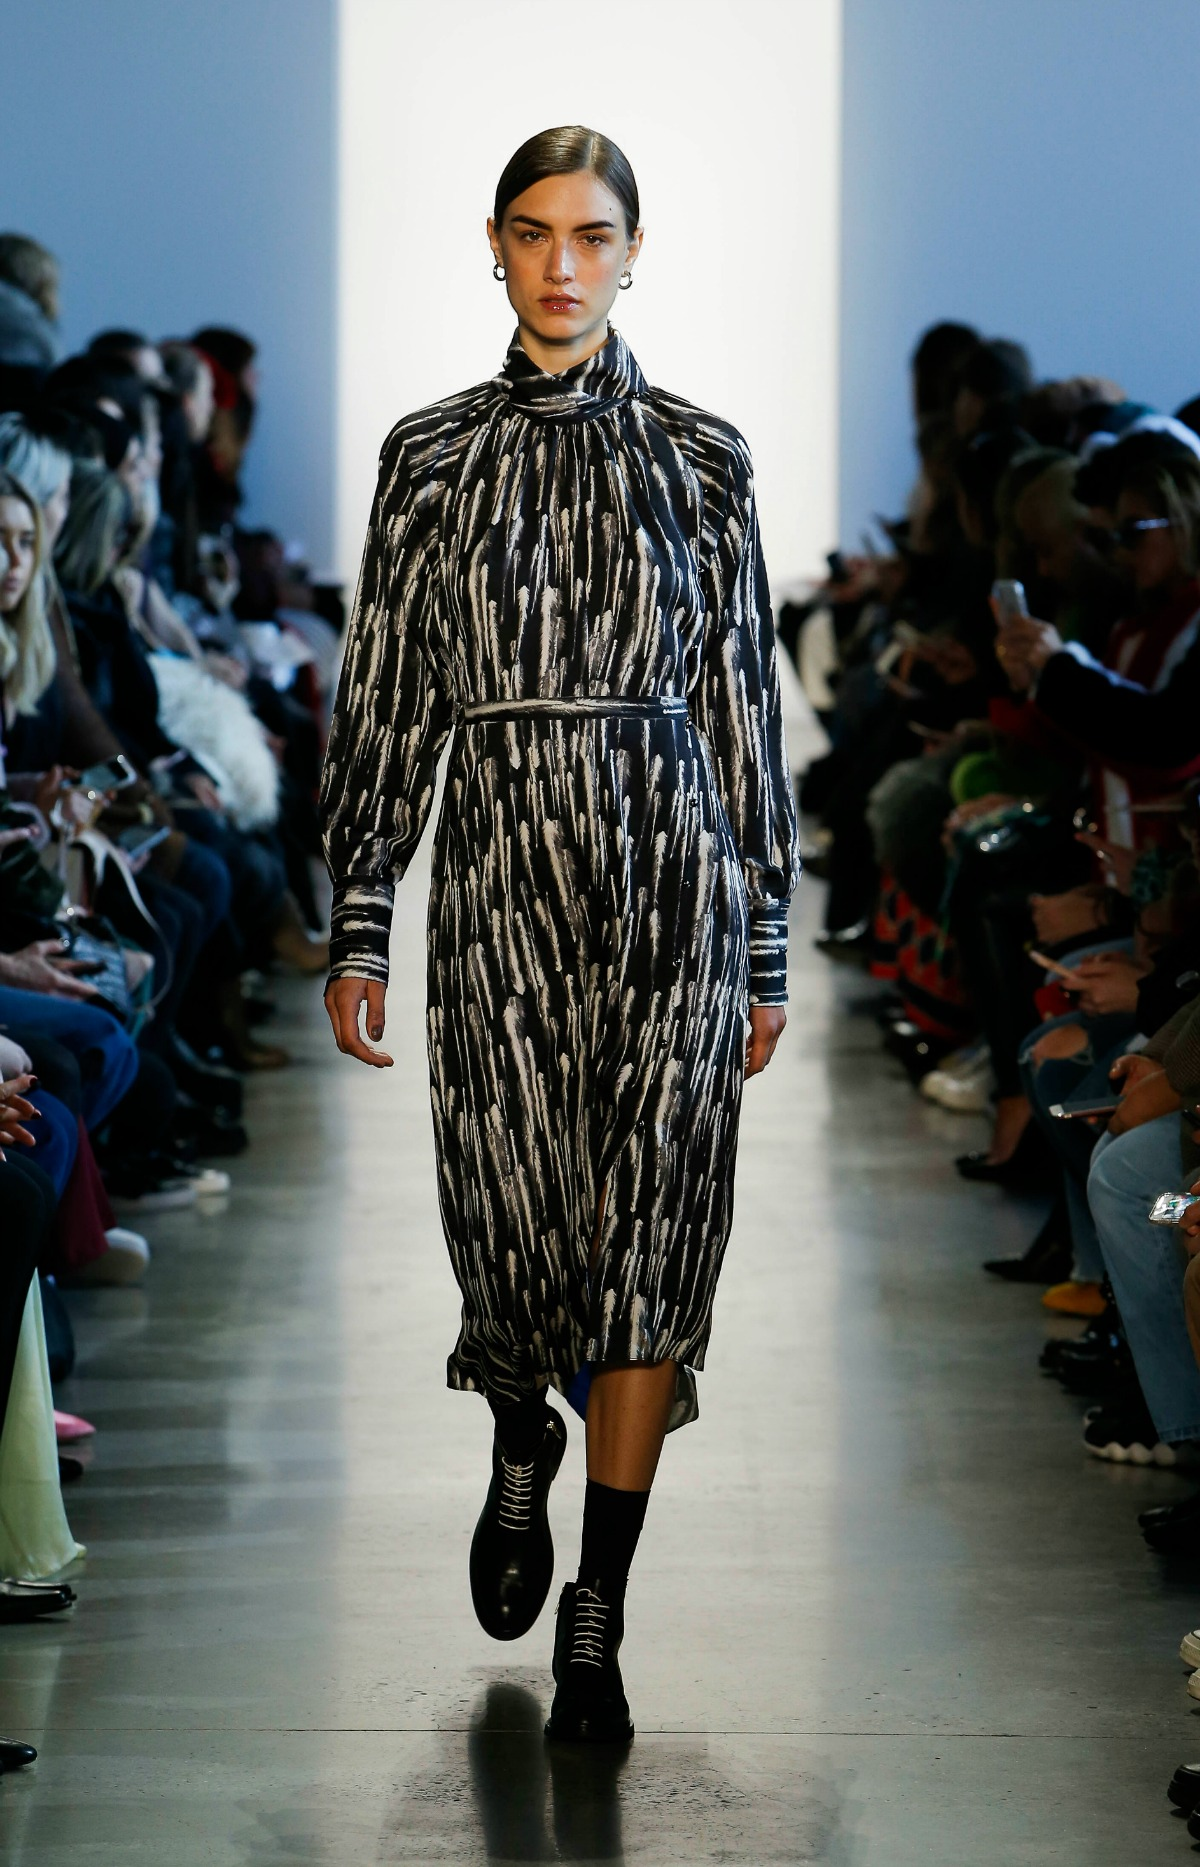 COLOVOS Fall 2018 Runway at NYFW I Silk Feather Print Dress #NYFW #WinterFashion